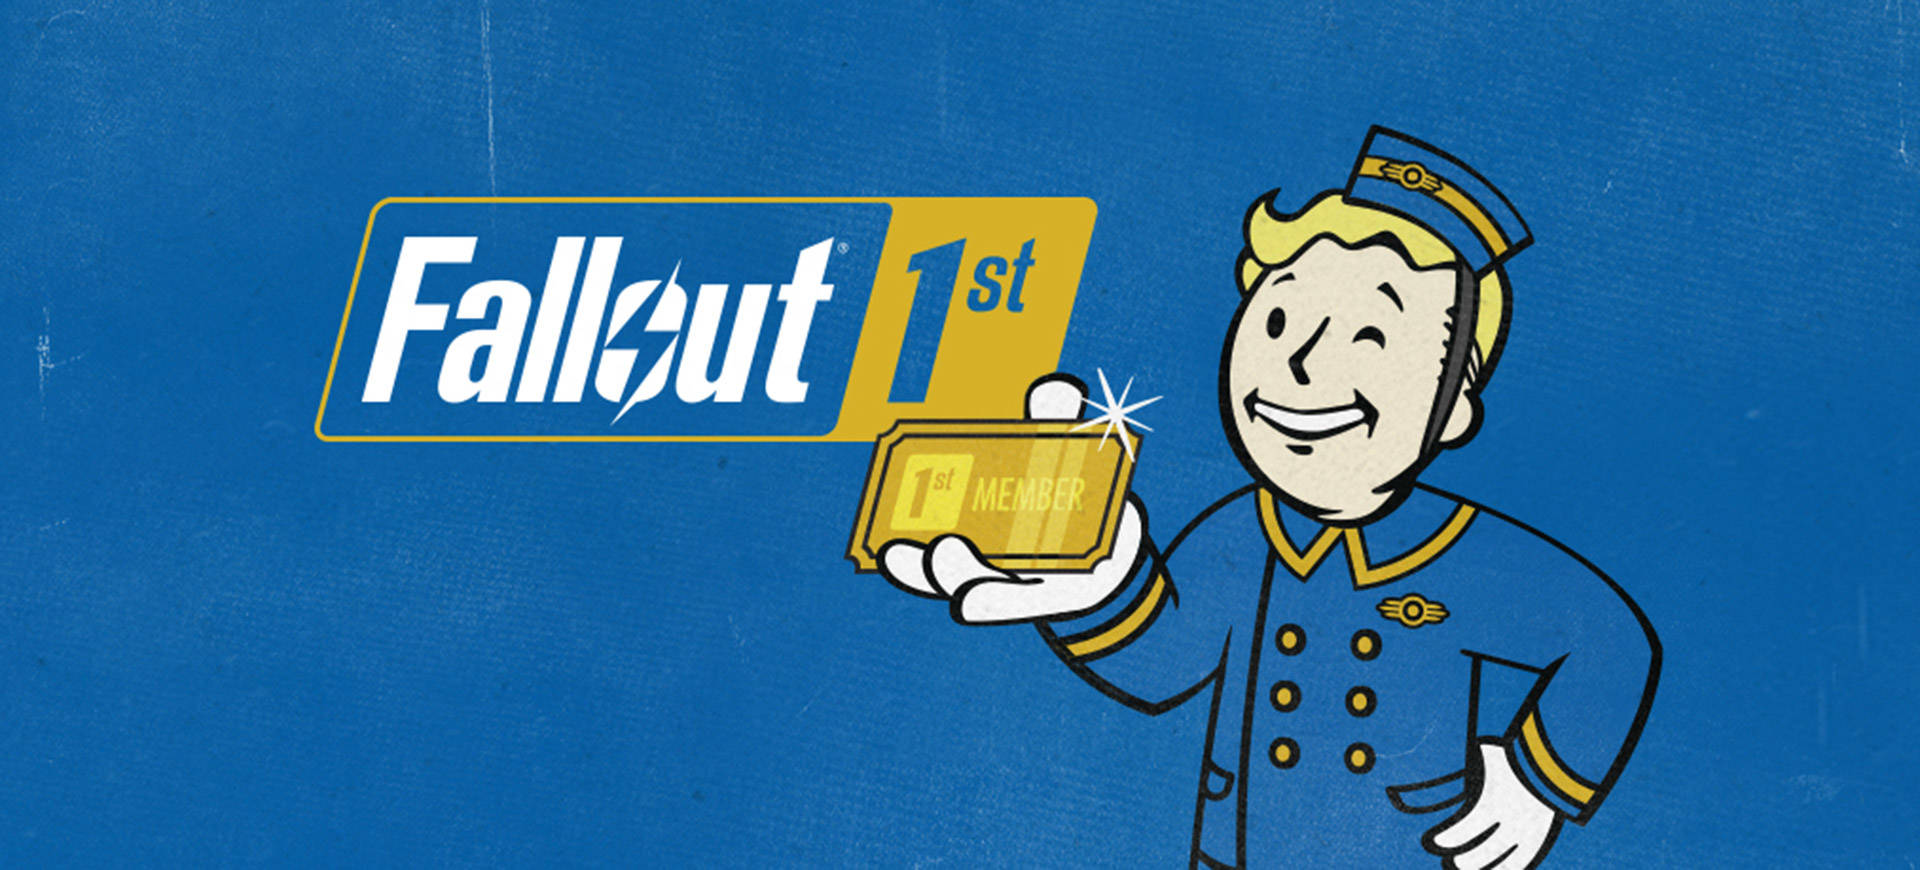 fallout 76 abonament fallout 1st subskrypcja prywatne serwery